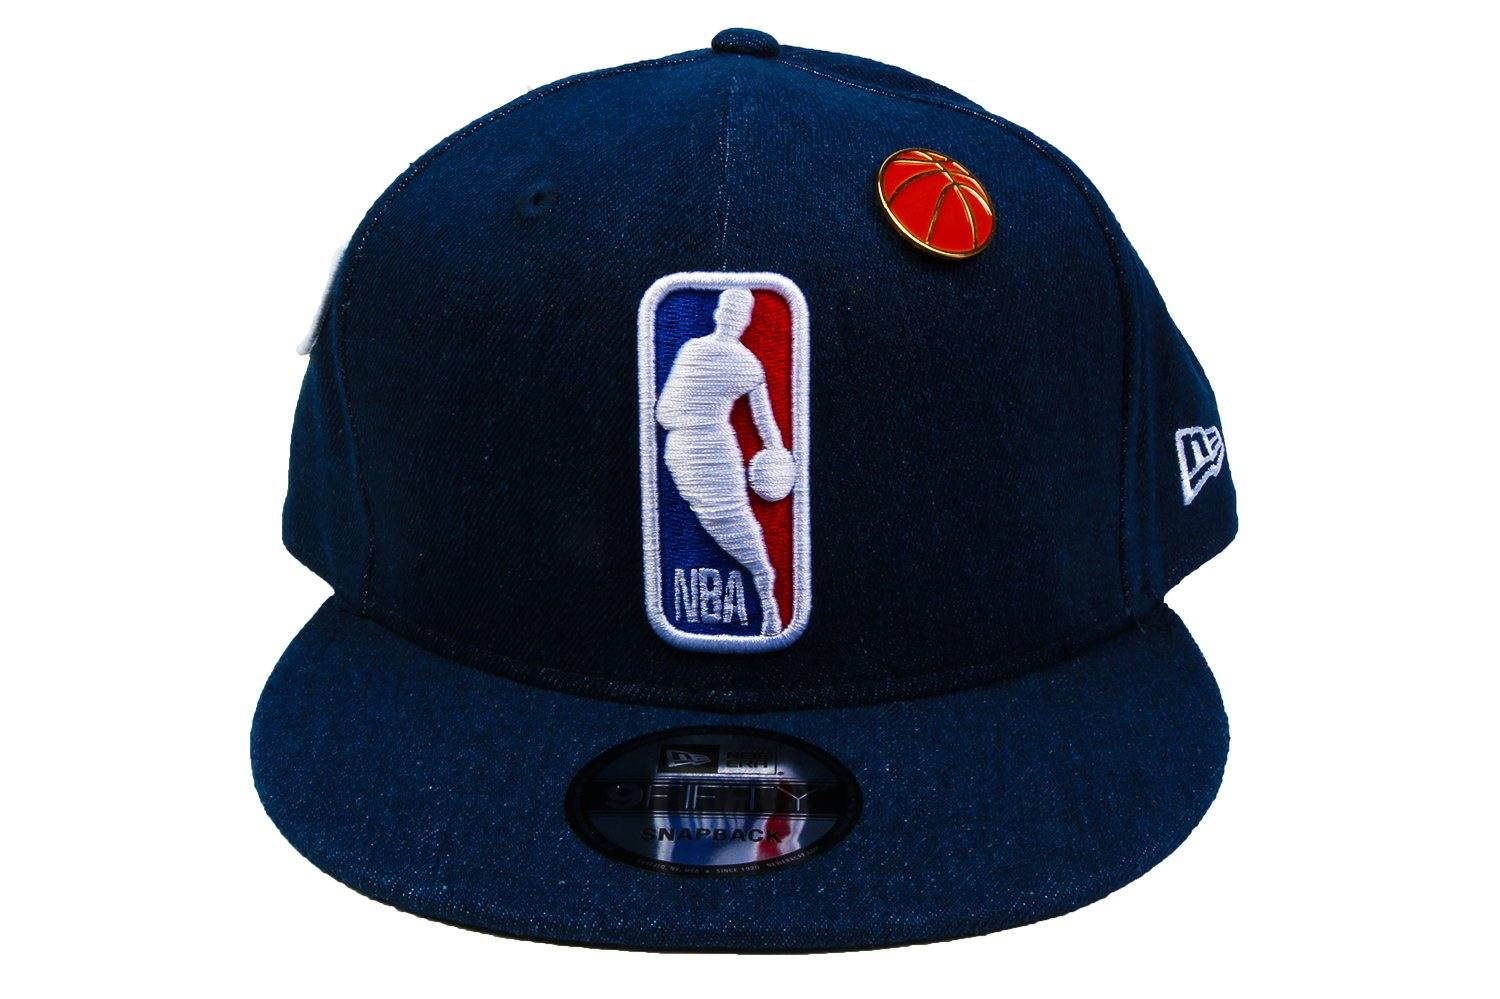 NBA 18 DRAFT 950 NBA LOG XBL HATS NEW ERA NAVY ONE SIZE